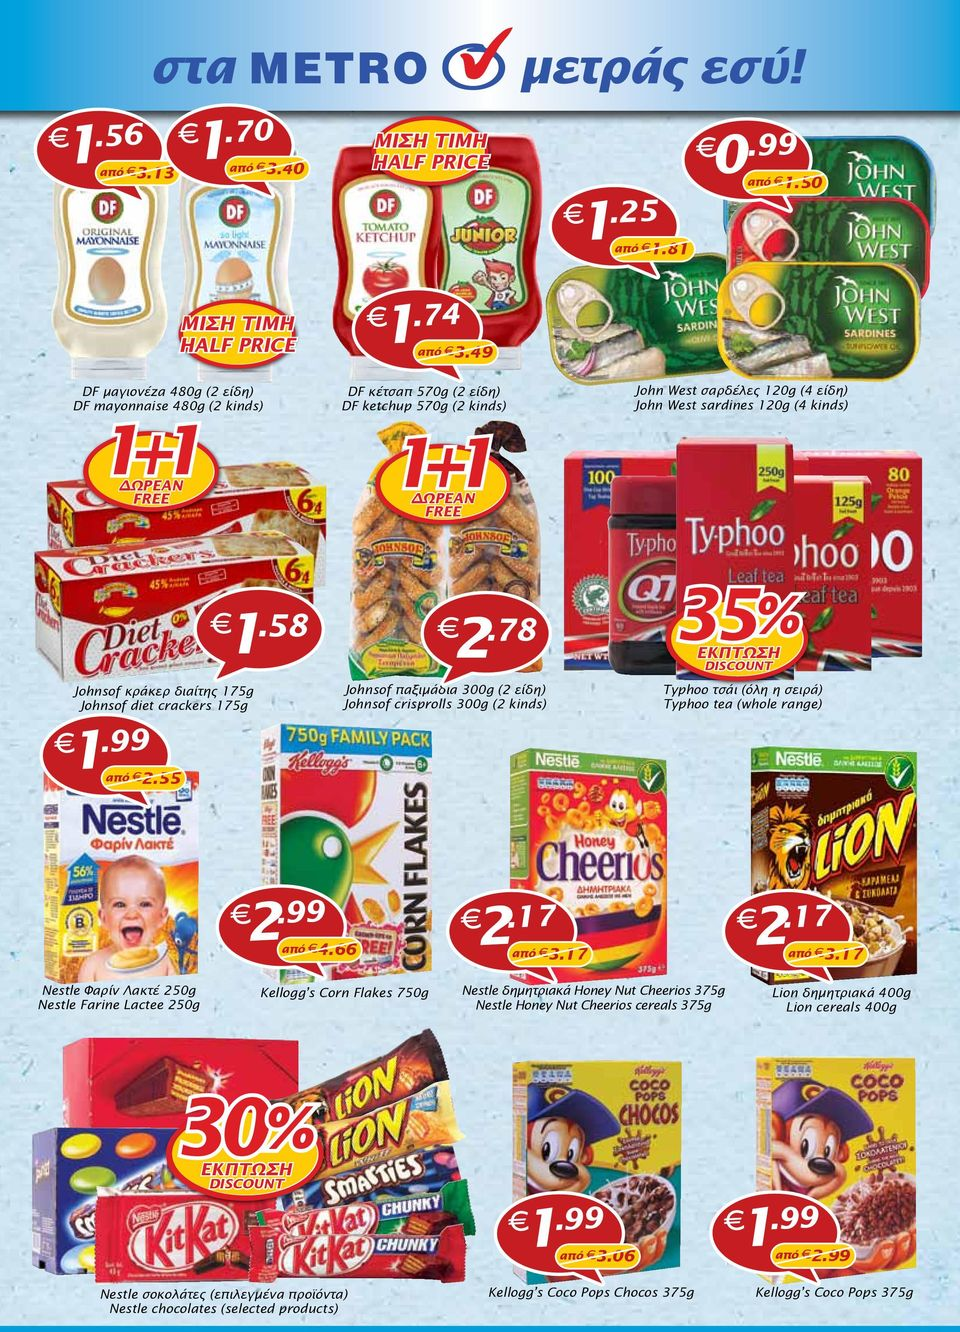 (4 kinds) Johnso κράκερ διαίτης 175g Johnso diet crackers 175g από από 2.55 1.58 35% 2.